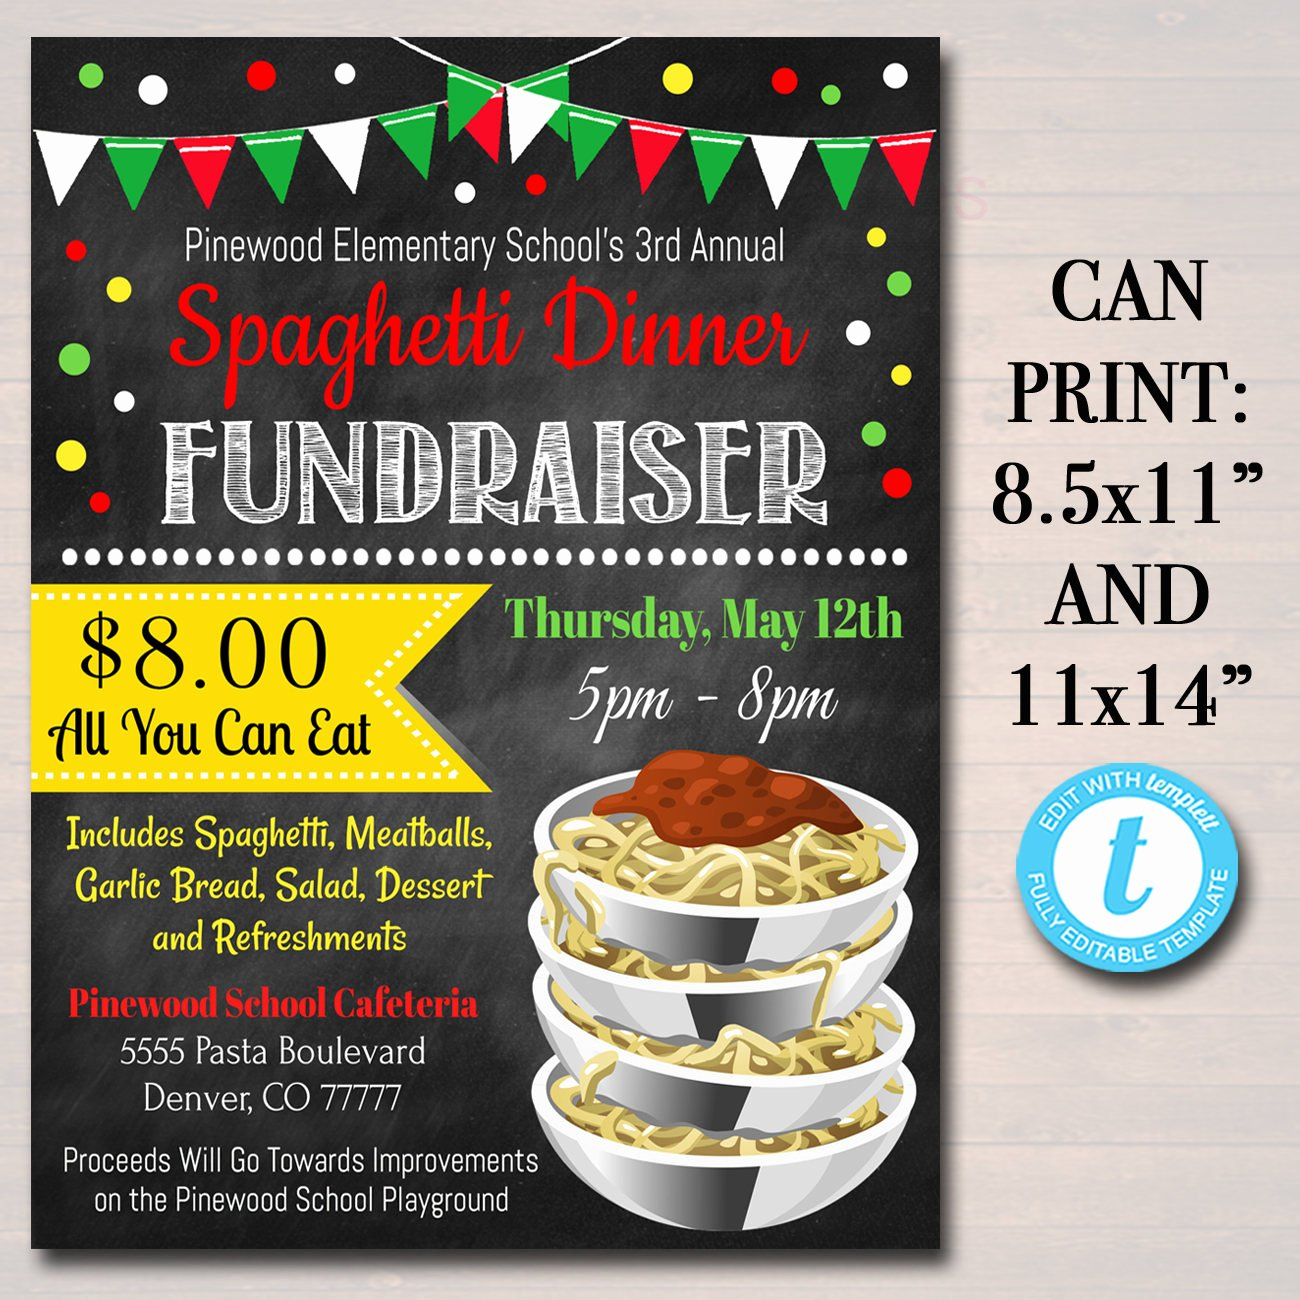 Spaghetti Dinner Fundraiser Flyer Template Luxury Editable Spaghetti Dinner Fundraiser Flyer Pto Pta Church